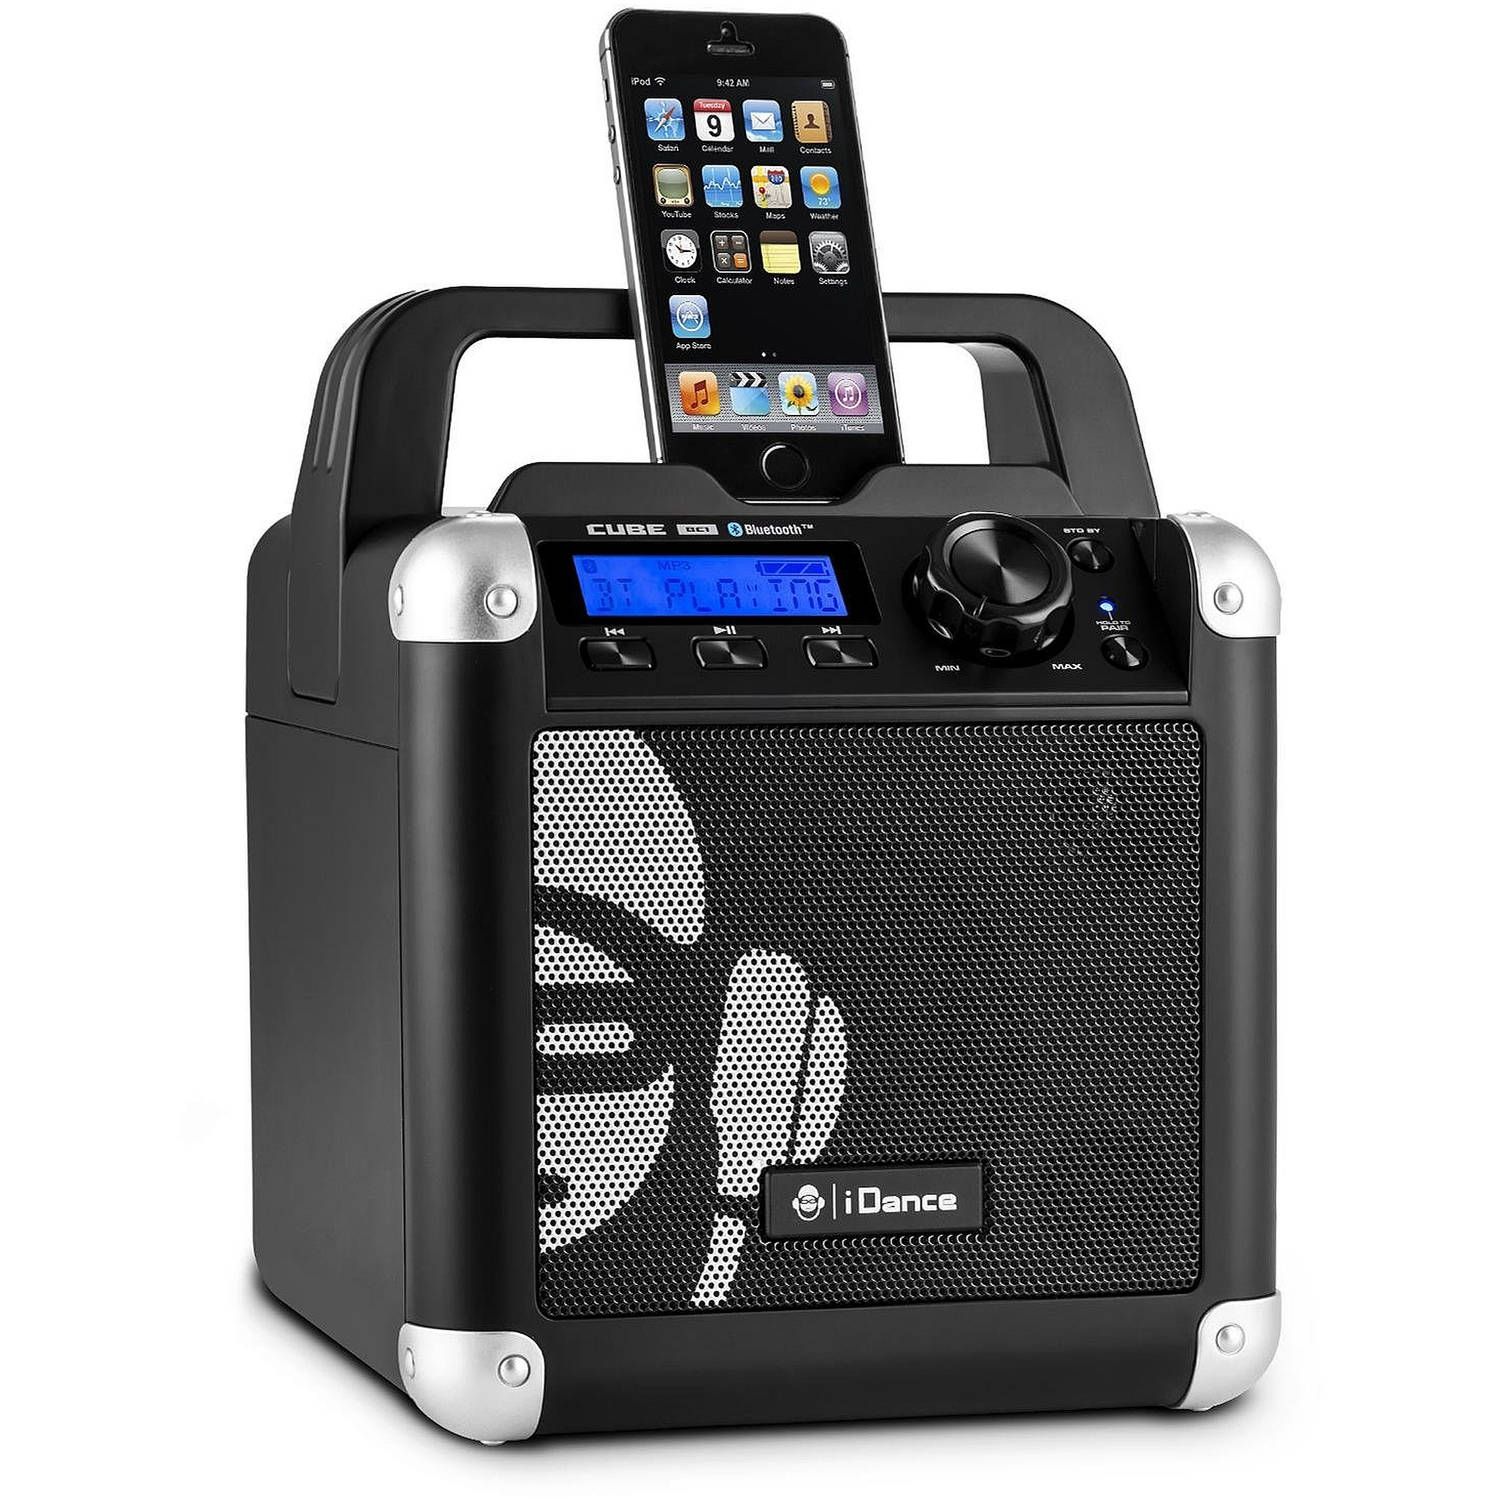 Trolley Lautsprecher Idance Britelite Idance 50 Watt Portable Bluetooth Speaker